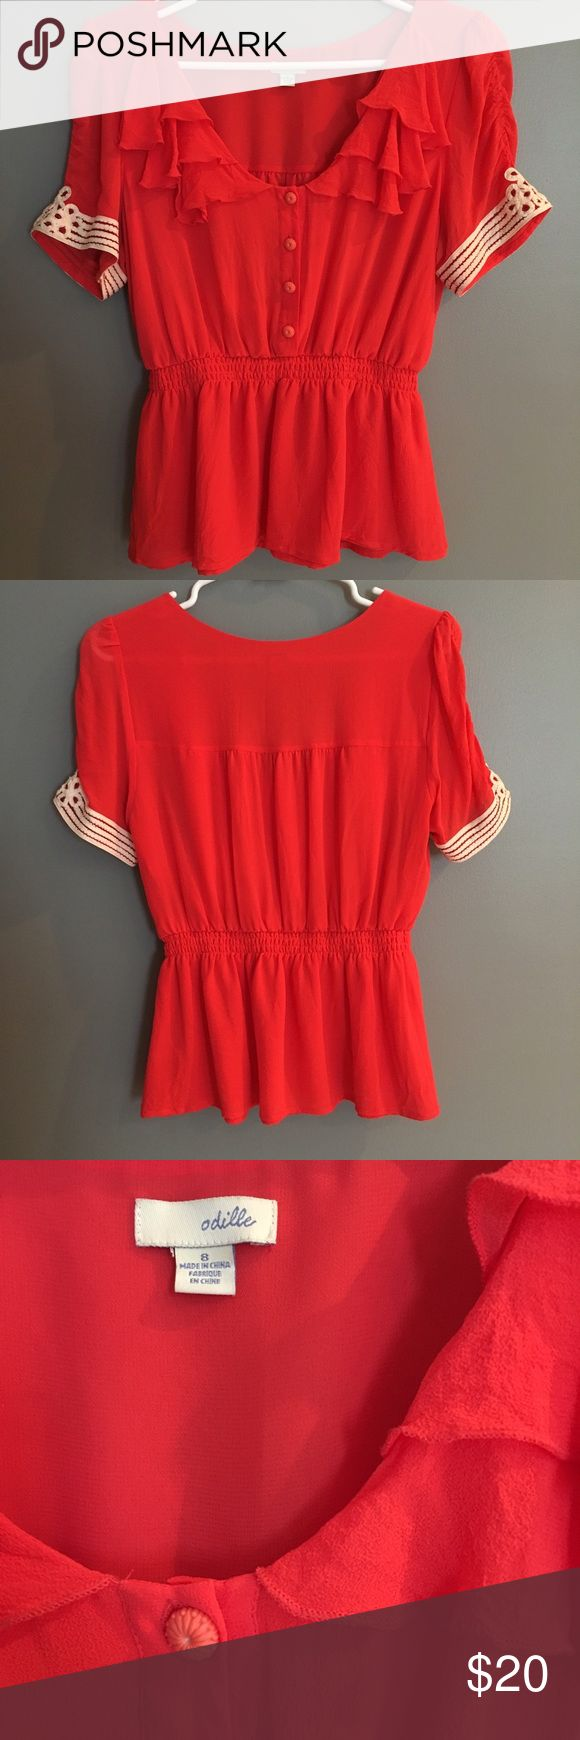 Anthropologie Coral Blouse Size 8 Adorable coral blouse with button detailing on the front , cream embroidery on the sleeves, and cinched waist. Worn twice. Excellent condition! Anthropologie Tops Blouses